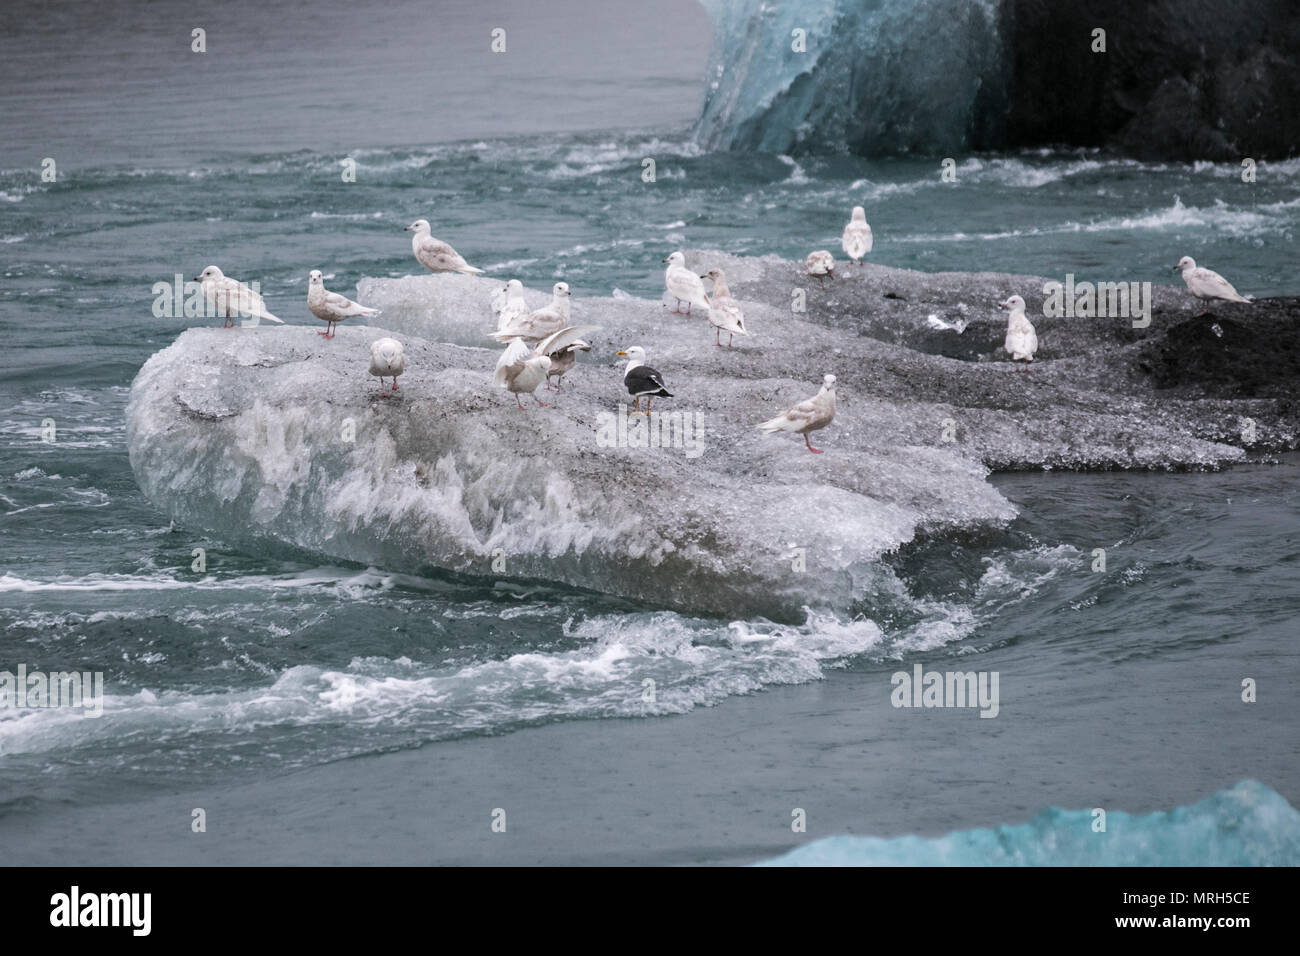 Seabirds on the Jokulsarlon glacier lagoon located at Breiðamerkurjökull, an outlet glacier of the magnificent Vatnajökull Glacier which lies beyond it. Ice floe, ice float, sea ice, drift ice, blue ice Ice floe, Sea ice formation and features, floating ice blocks, rafts and hummocks, a large pack of floating ice on the Diamond Beach. The Jokulsarlon glacier,  drifting, floating, melting, warming, polar, arctic, global, glacier, blue, cold, thawing landscape, ocean lagoon black sand beach, Iceland. - Stock Image